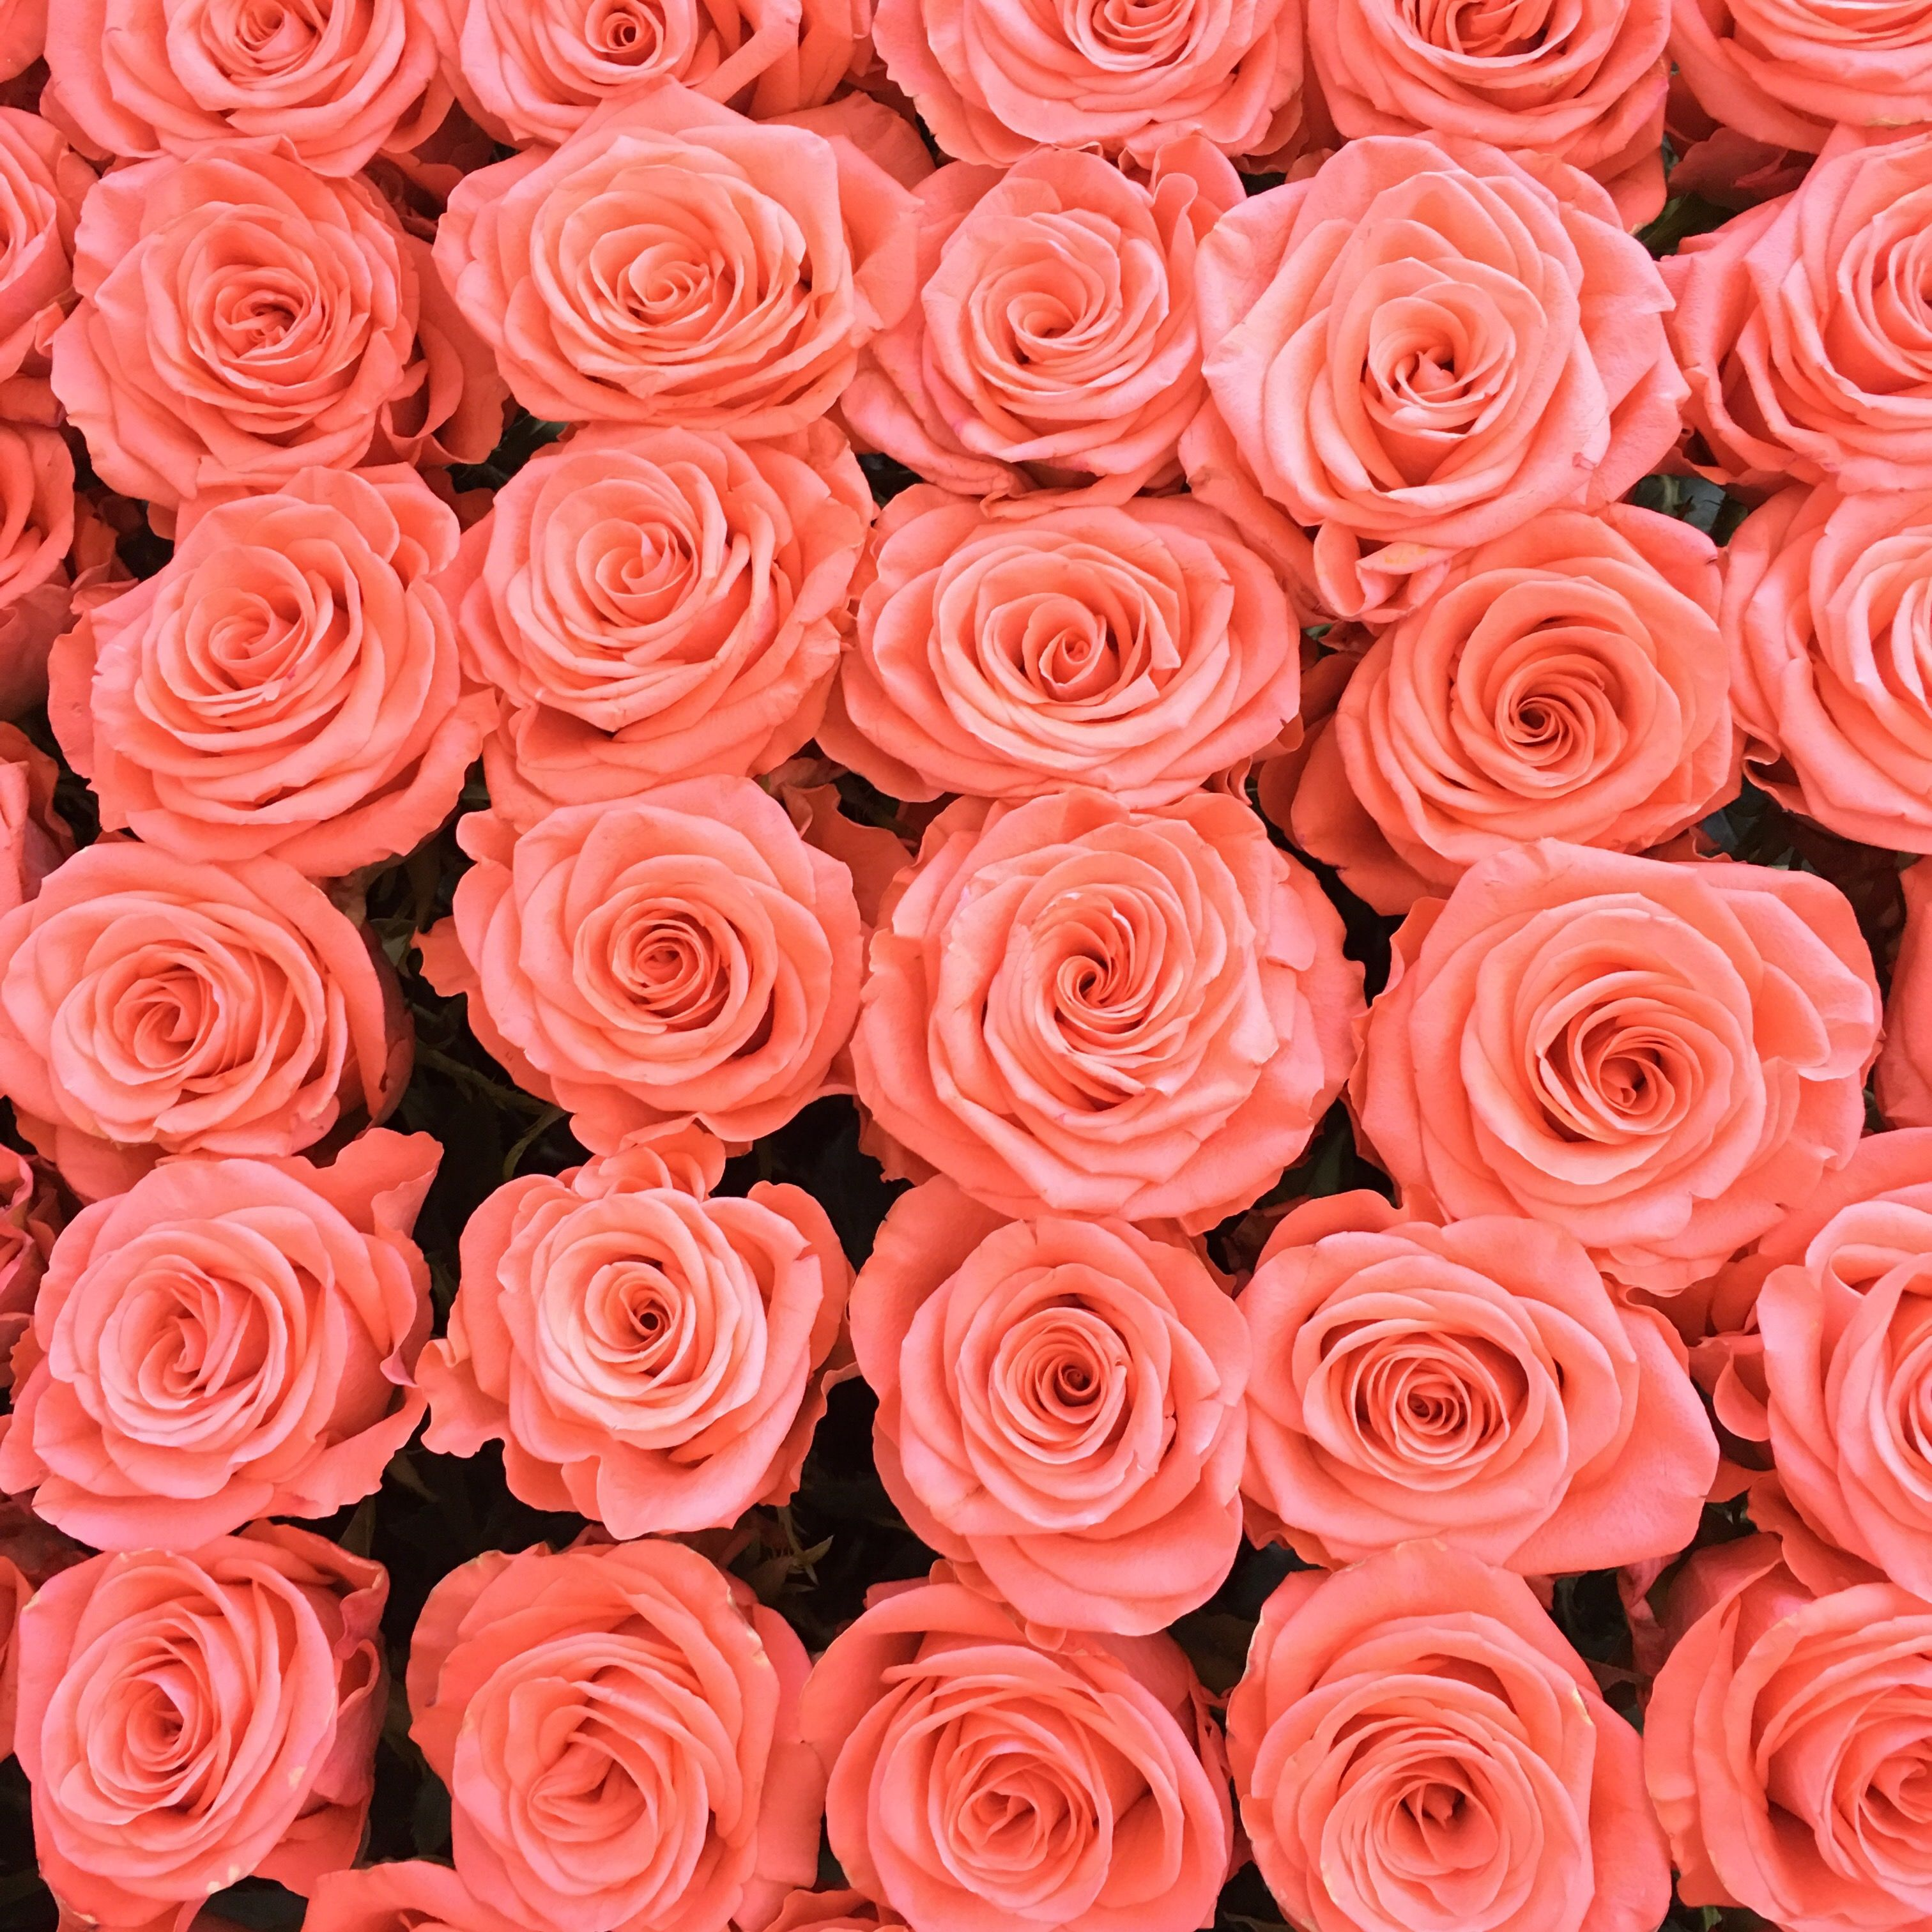 18 Special Rose Color Meanings Rose Flower Meanings For